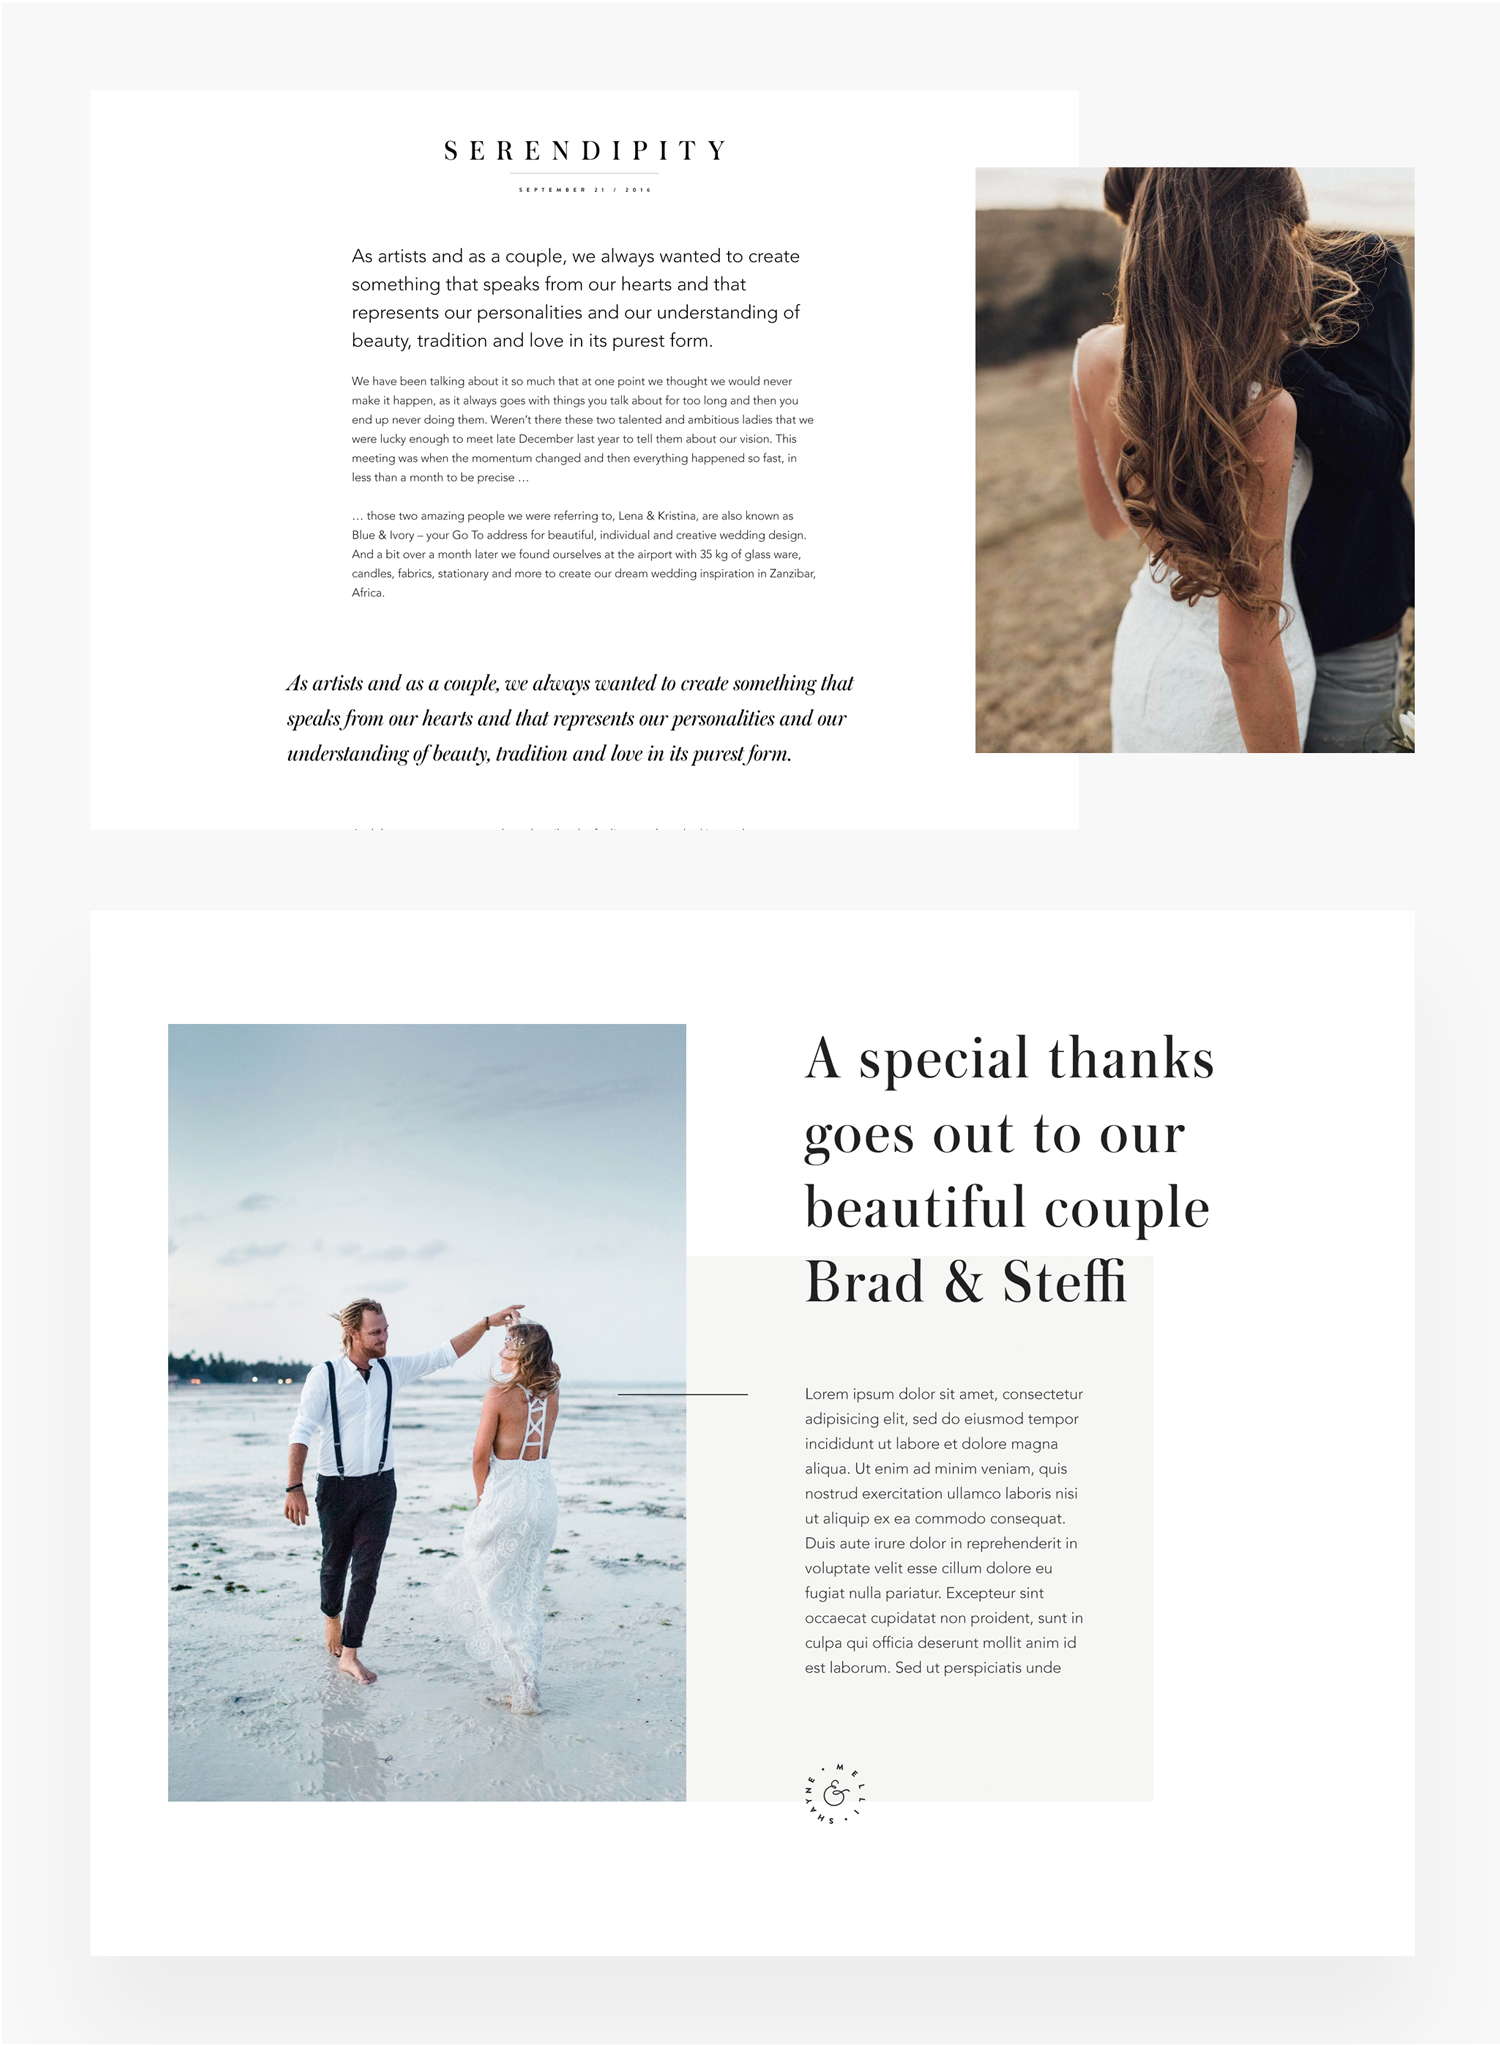 Melli & Shayne Wedding Photography, Germany, website design, flothemes, branding blog layout